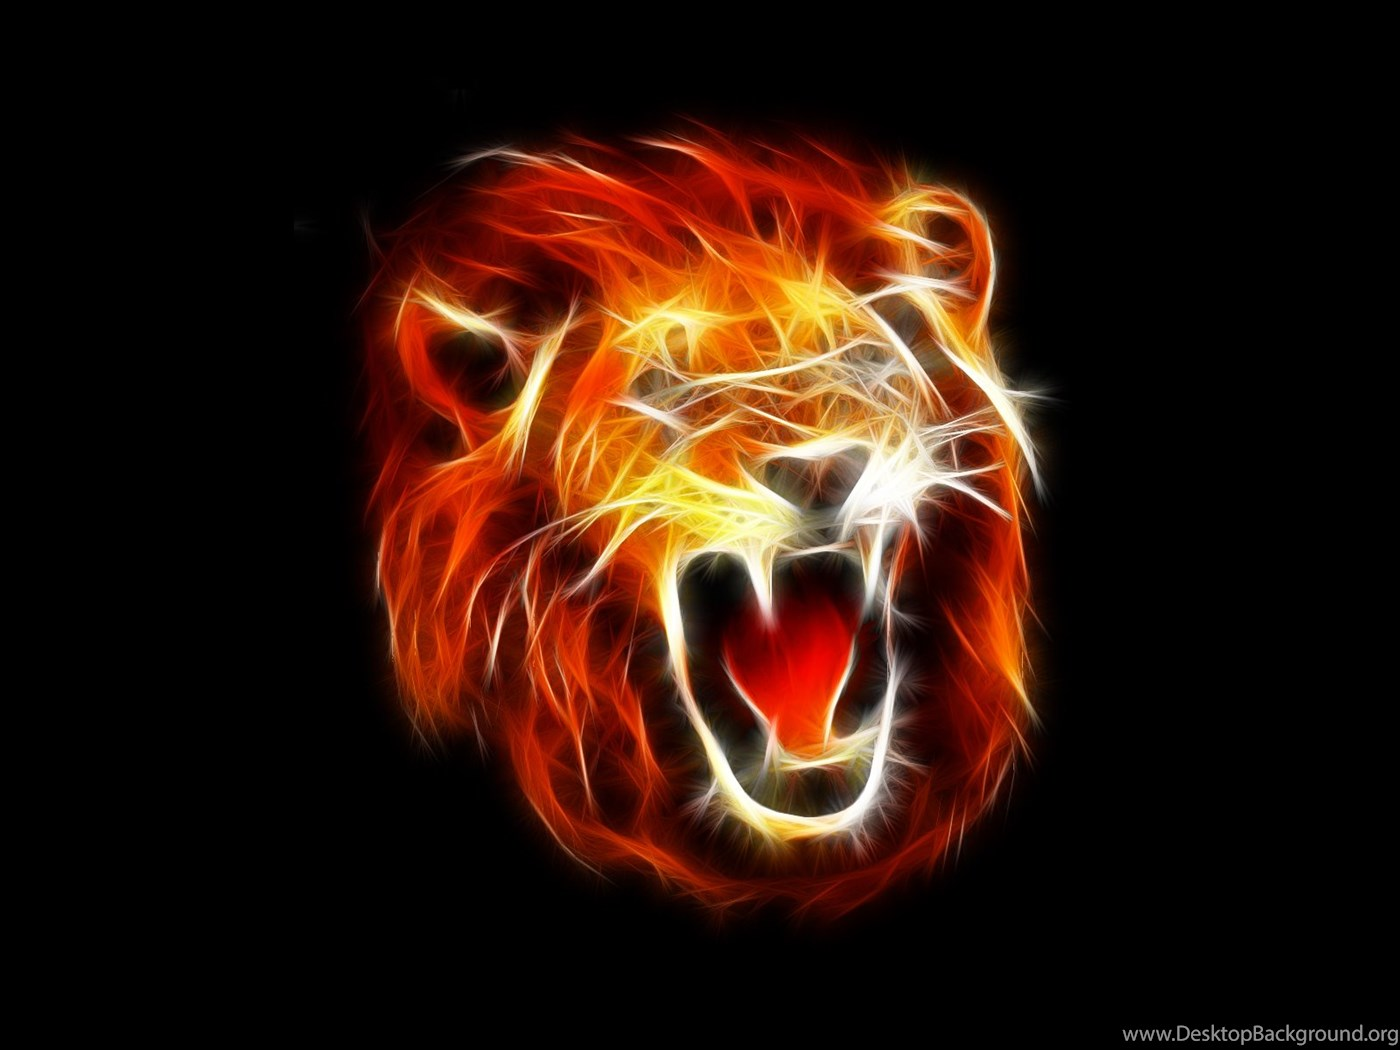 970885 awesome 3d lion wallpapers fire black